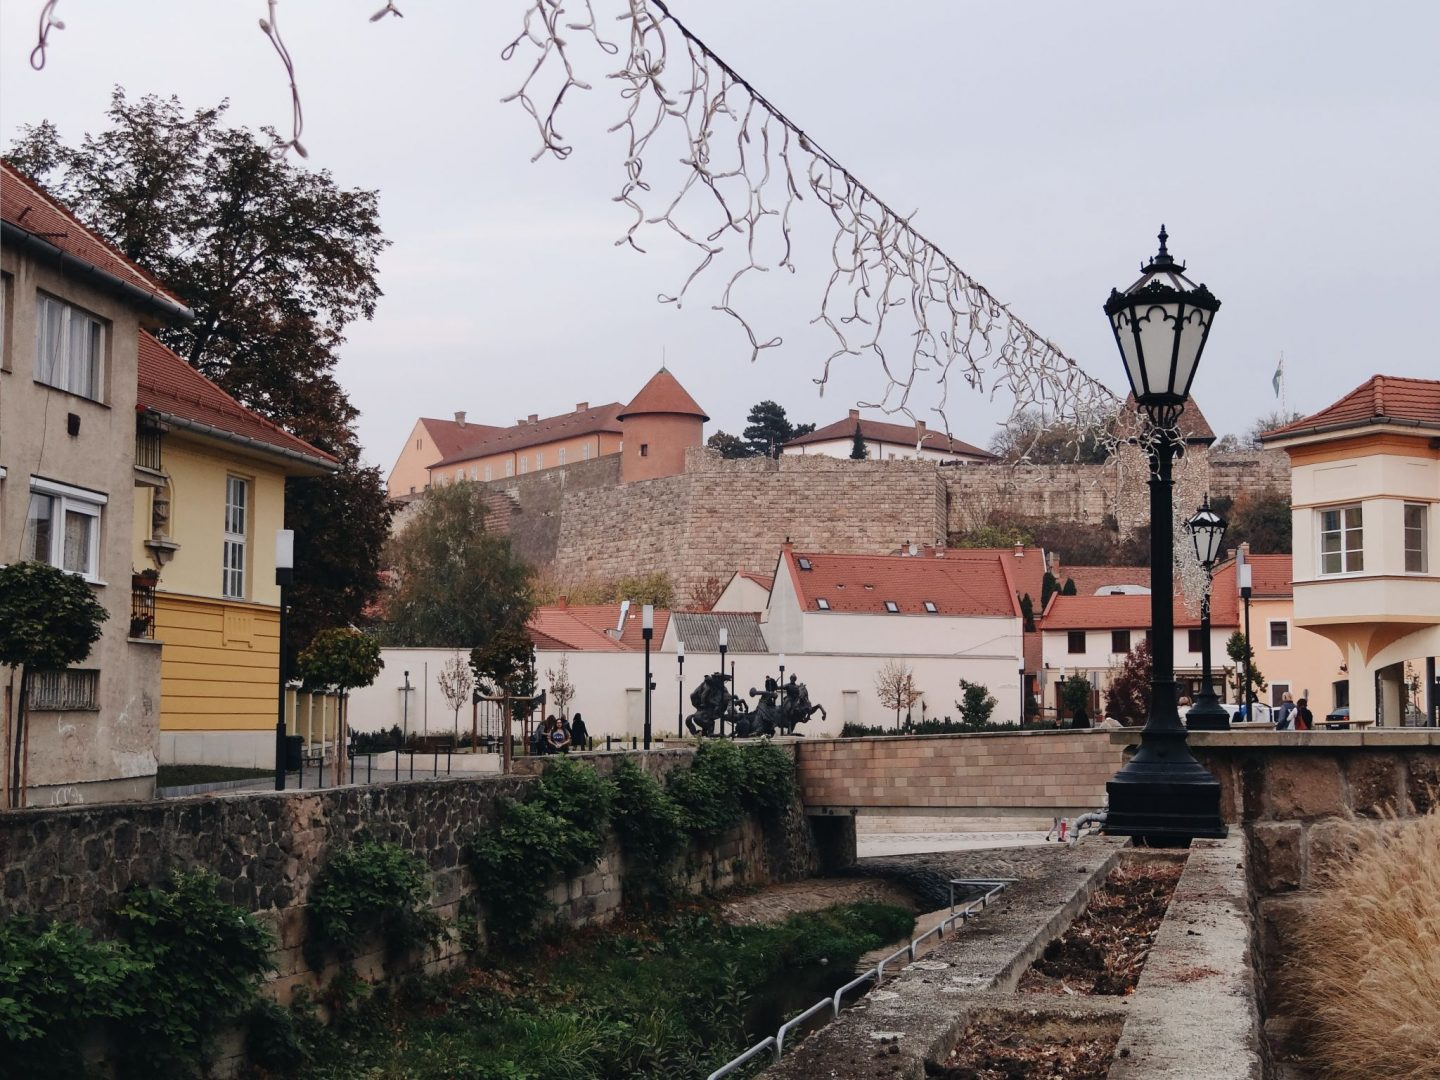 Eger old town, Hungary